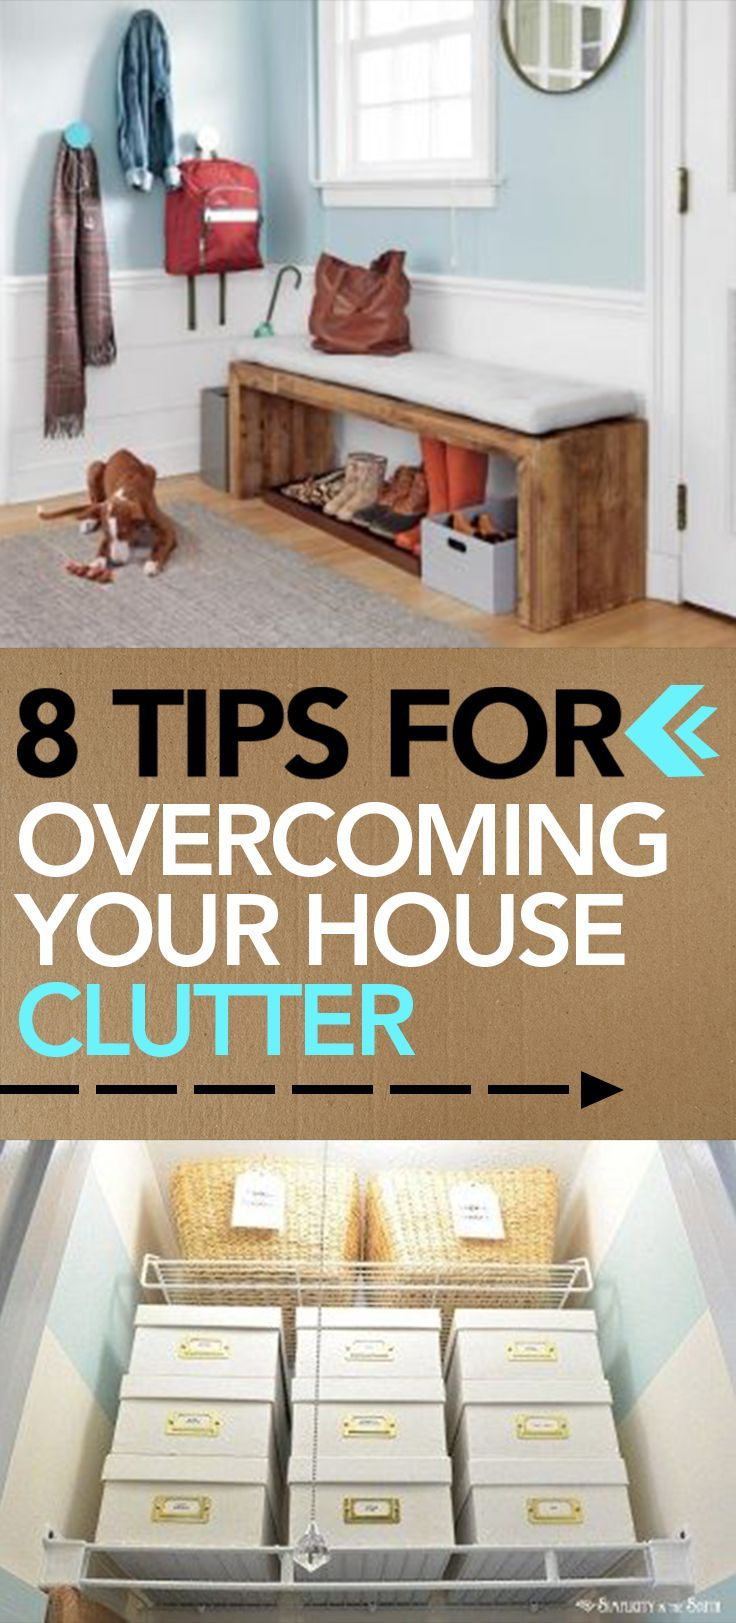 Tips For Overcoming Your House Clutter Popular Pins Clutter